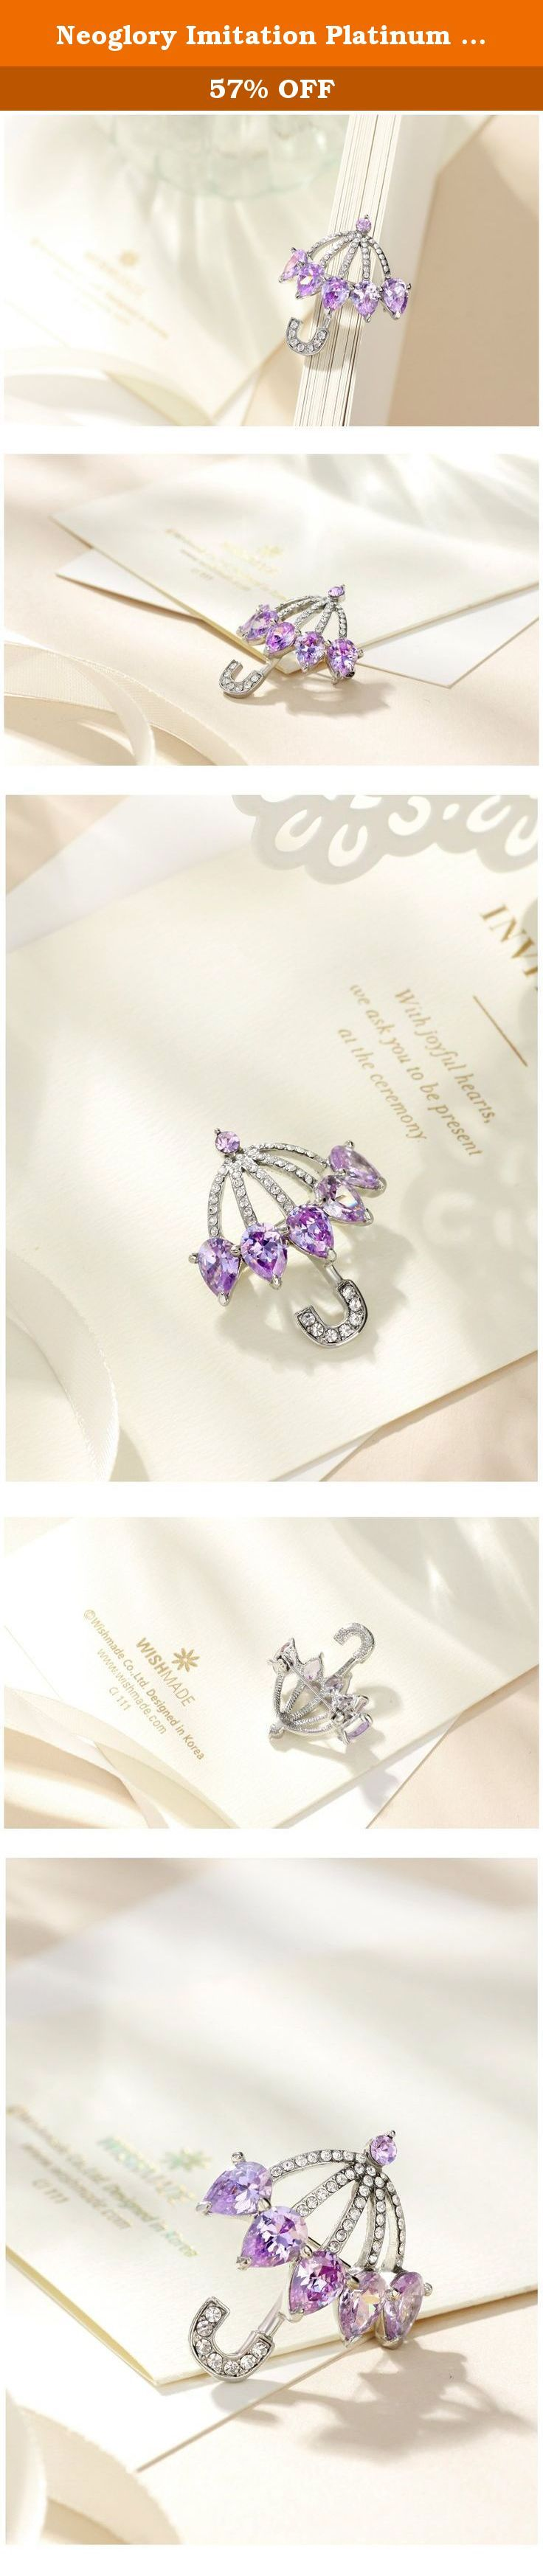 Neoglory Imitation Platinum Plated Cubic Zirconia CZ Purple Umbrella Brooch Pins. NEOGLORY JEWELRY IS... Neoglory Jewelry is the biggest synthetic jewelry enterprise in china, founded in 1995. We possess the world's largest fashion jewelry production base, covering an area of about 13.4 hectares and holding nearly 3000 staffs. As a leading enterprise in China's fashion jewelry industry, Neoglory is equipped with a remarkable advantage in the integration of supply chains, thus providing a...